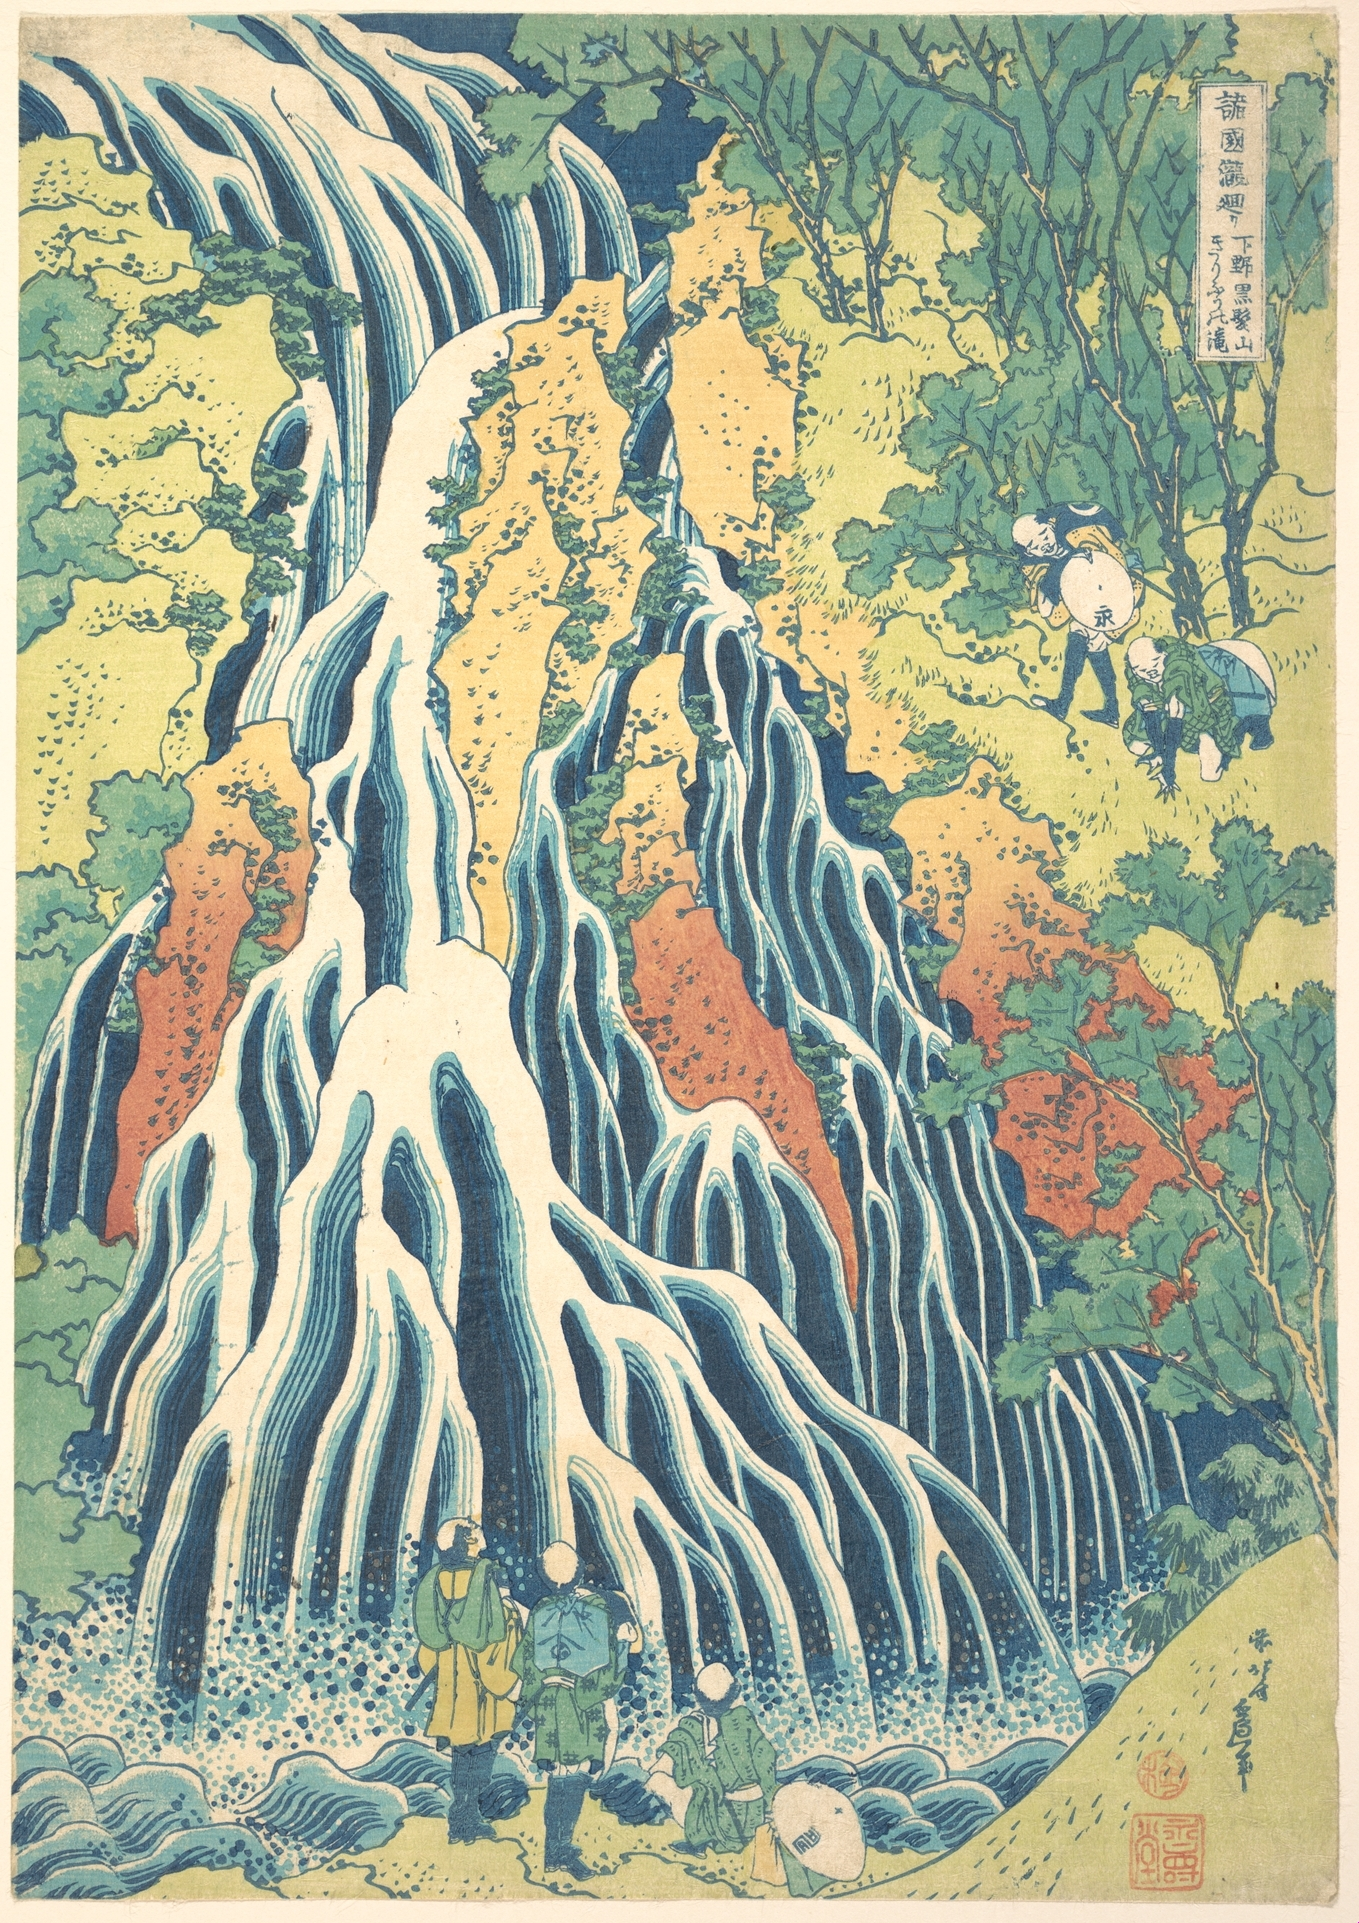 02. Japanese Woodblock Print Search